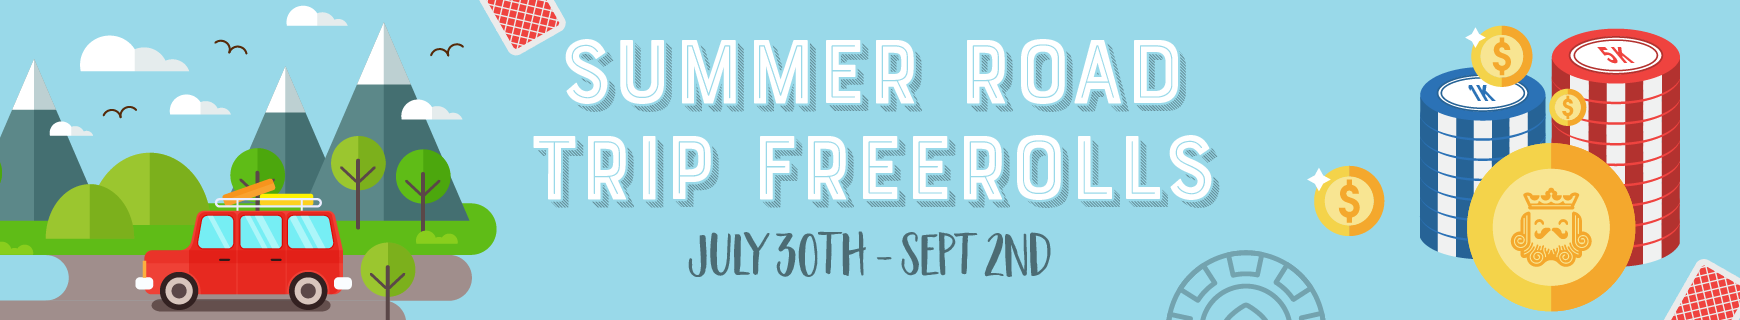 Summer road trip freerolls %28870 x 160%29 2x